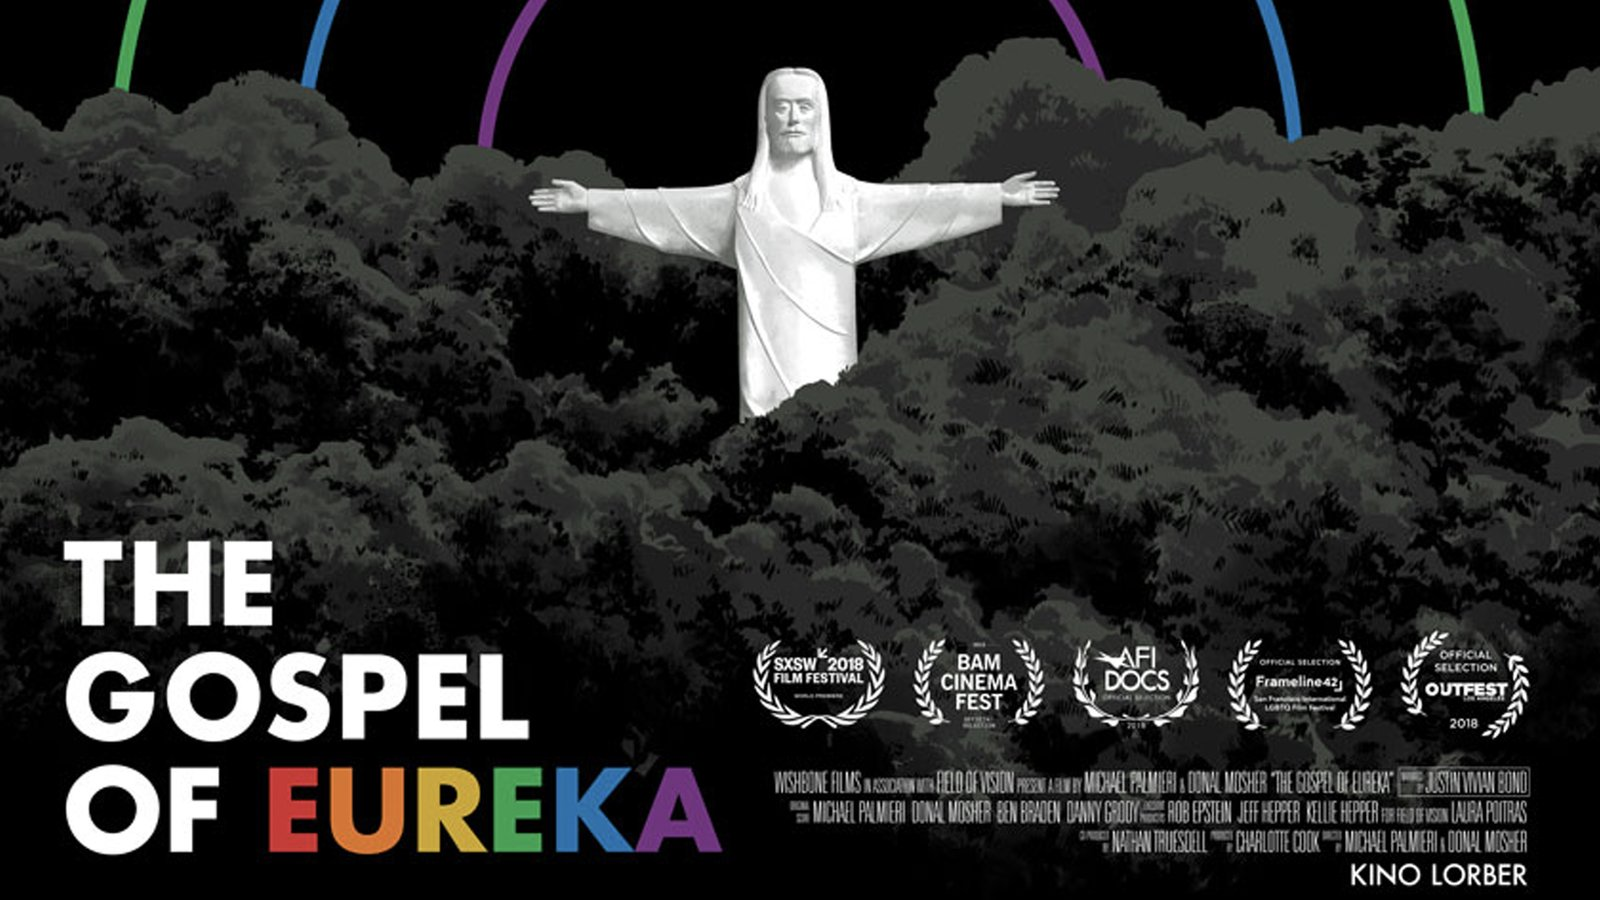 The Gospel of Eureka - Love, Faith, and Civil Rights Collide in the South